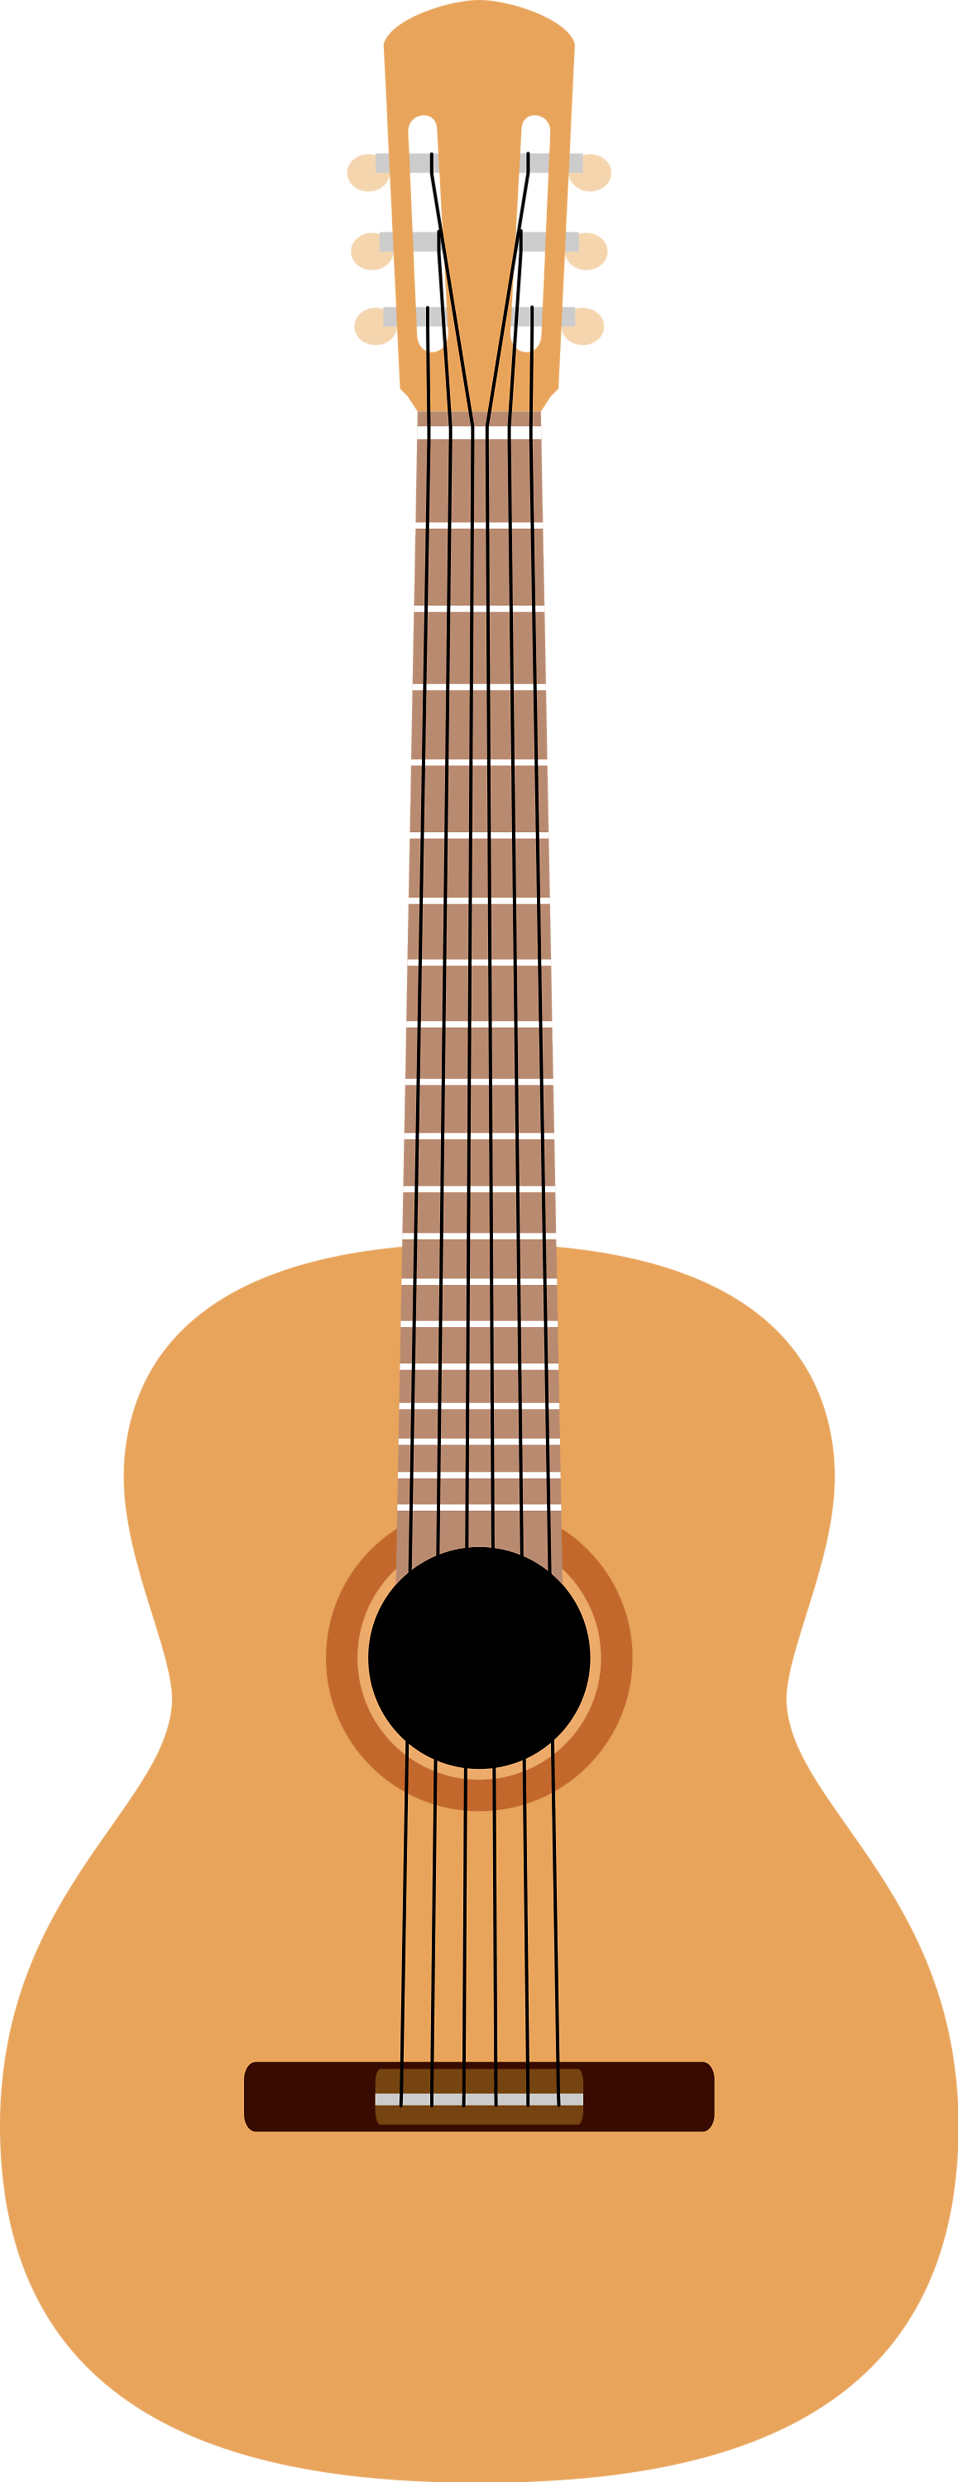 svg black and white download Guitar